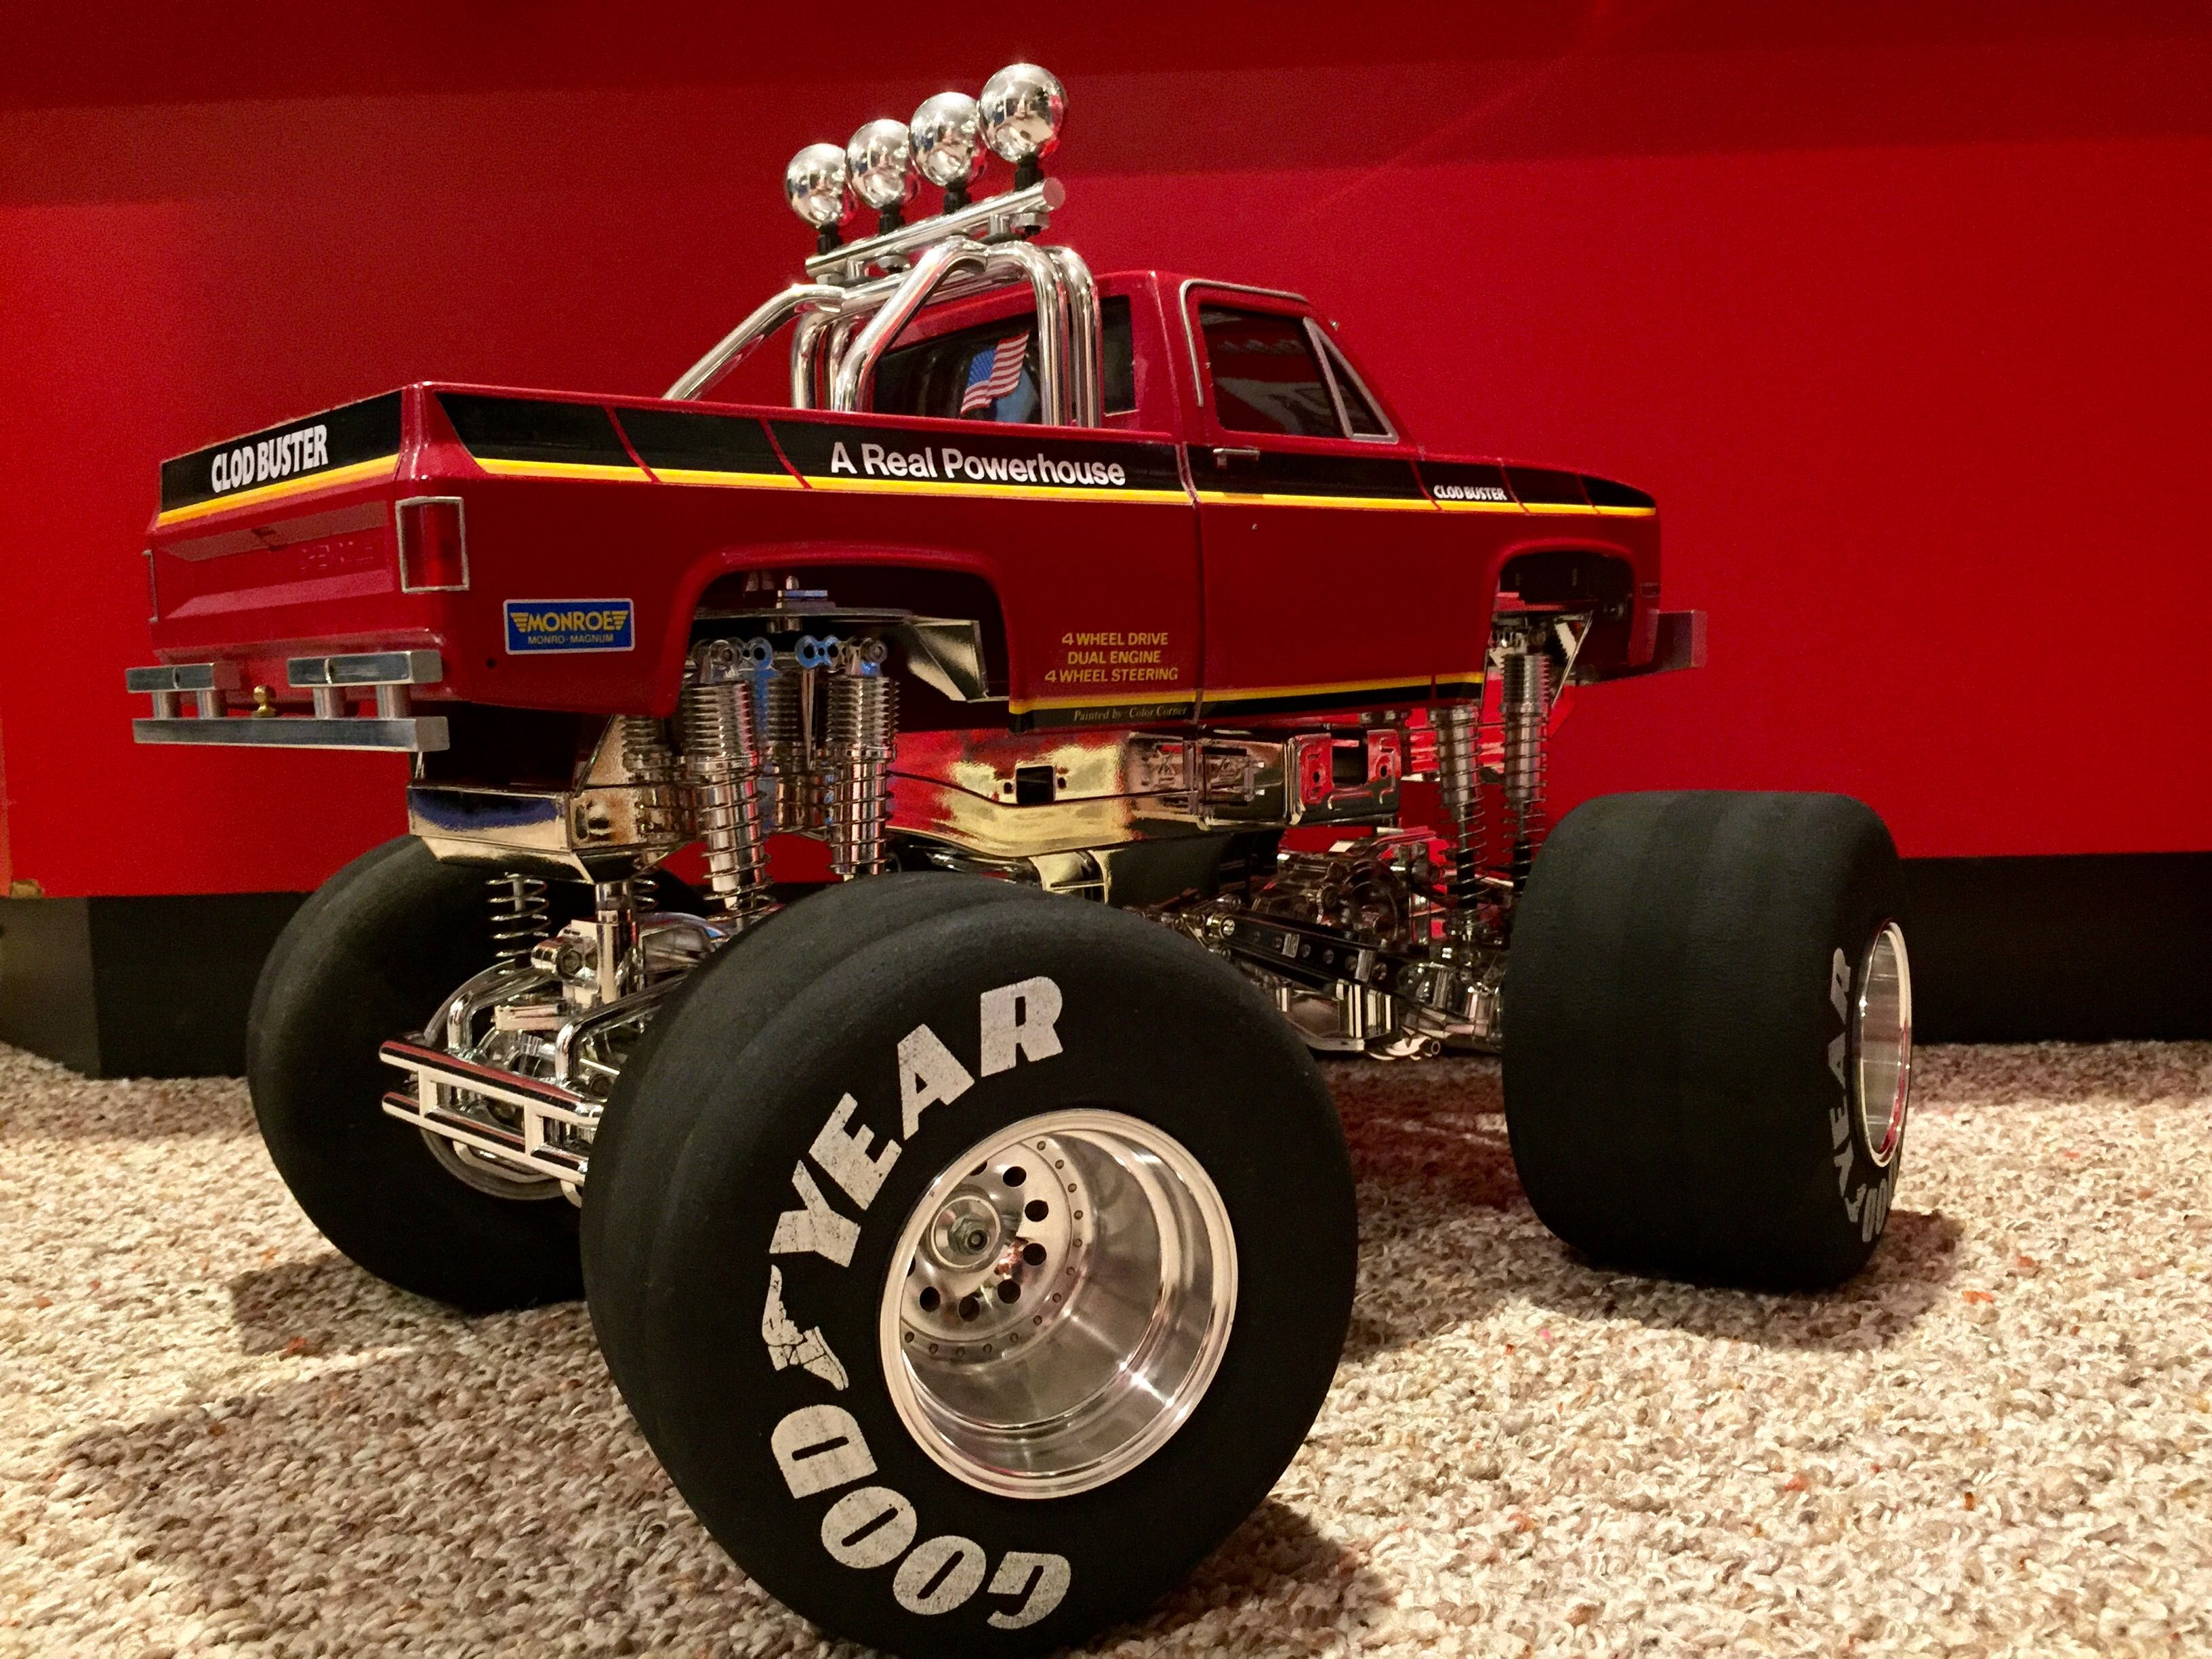 Pin By Michael Charles On Vintage Clod Busters Rc Cars And Trucks Rc Monster Truck Rc Cars